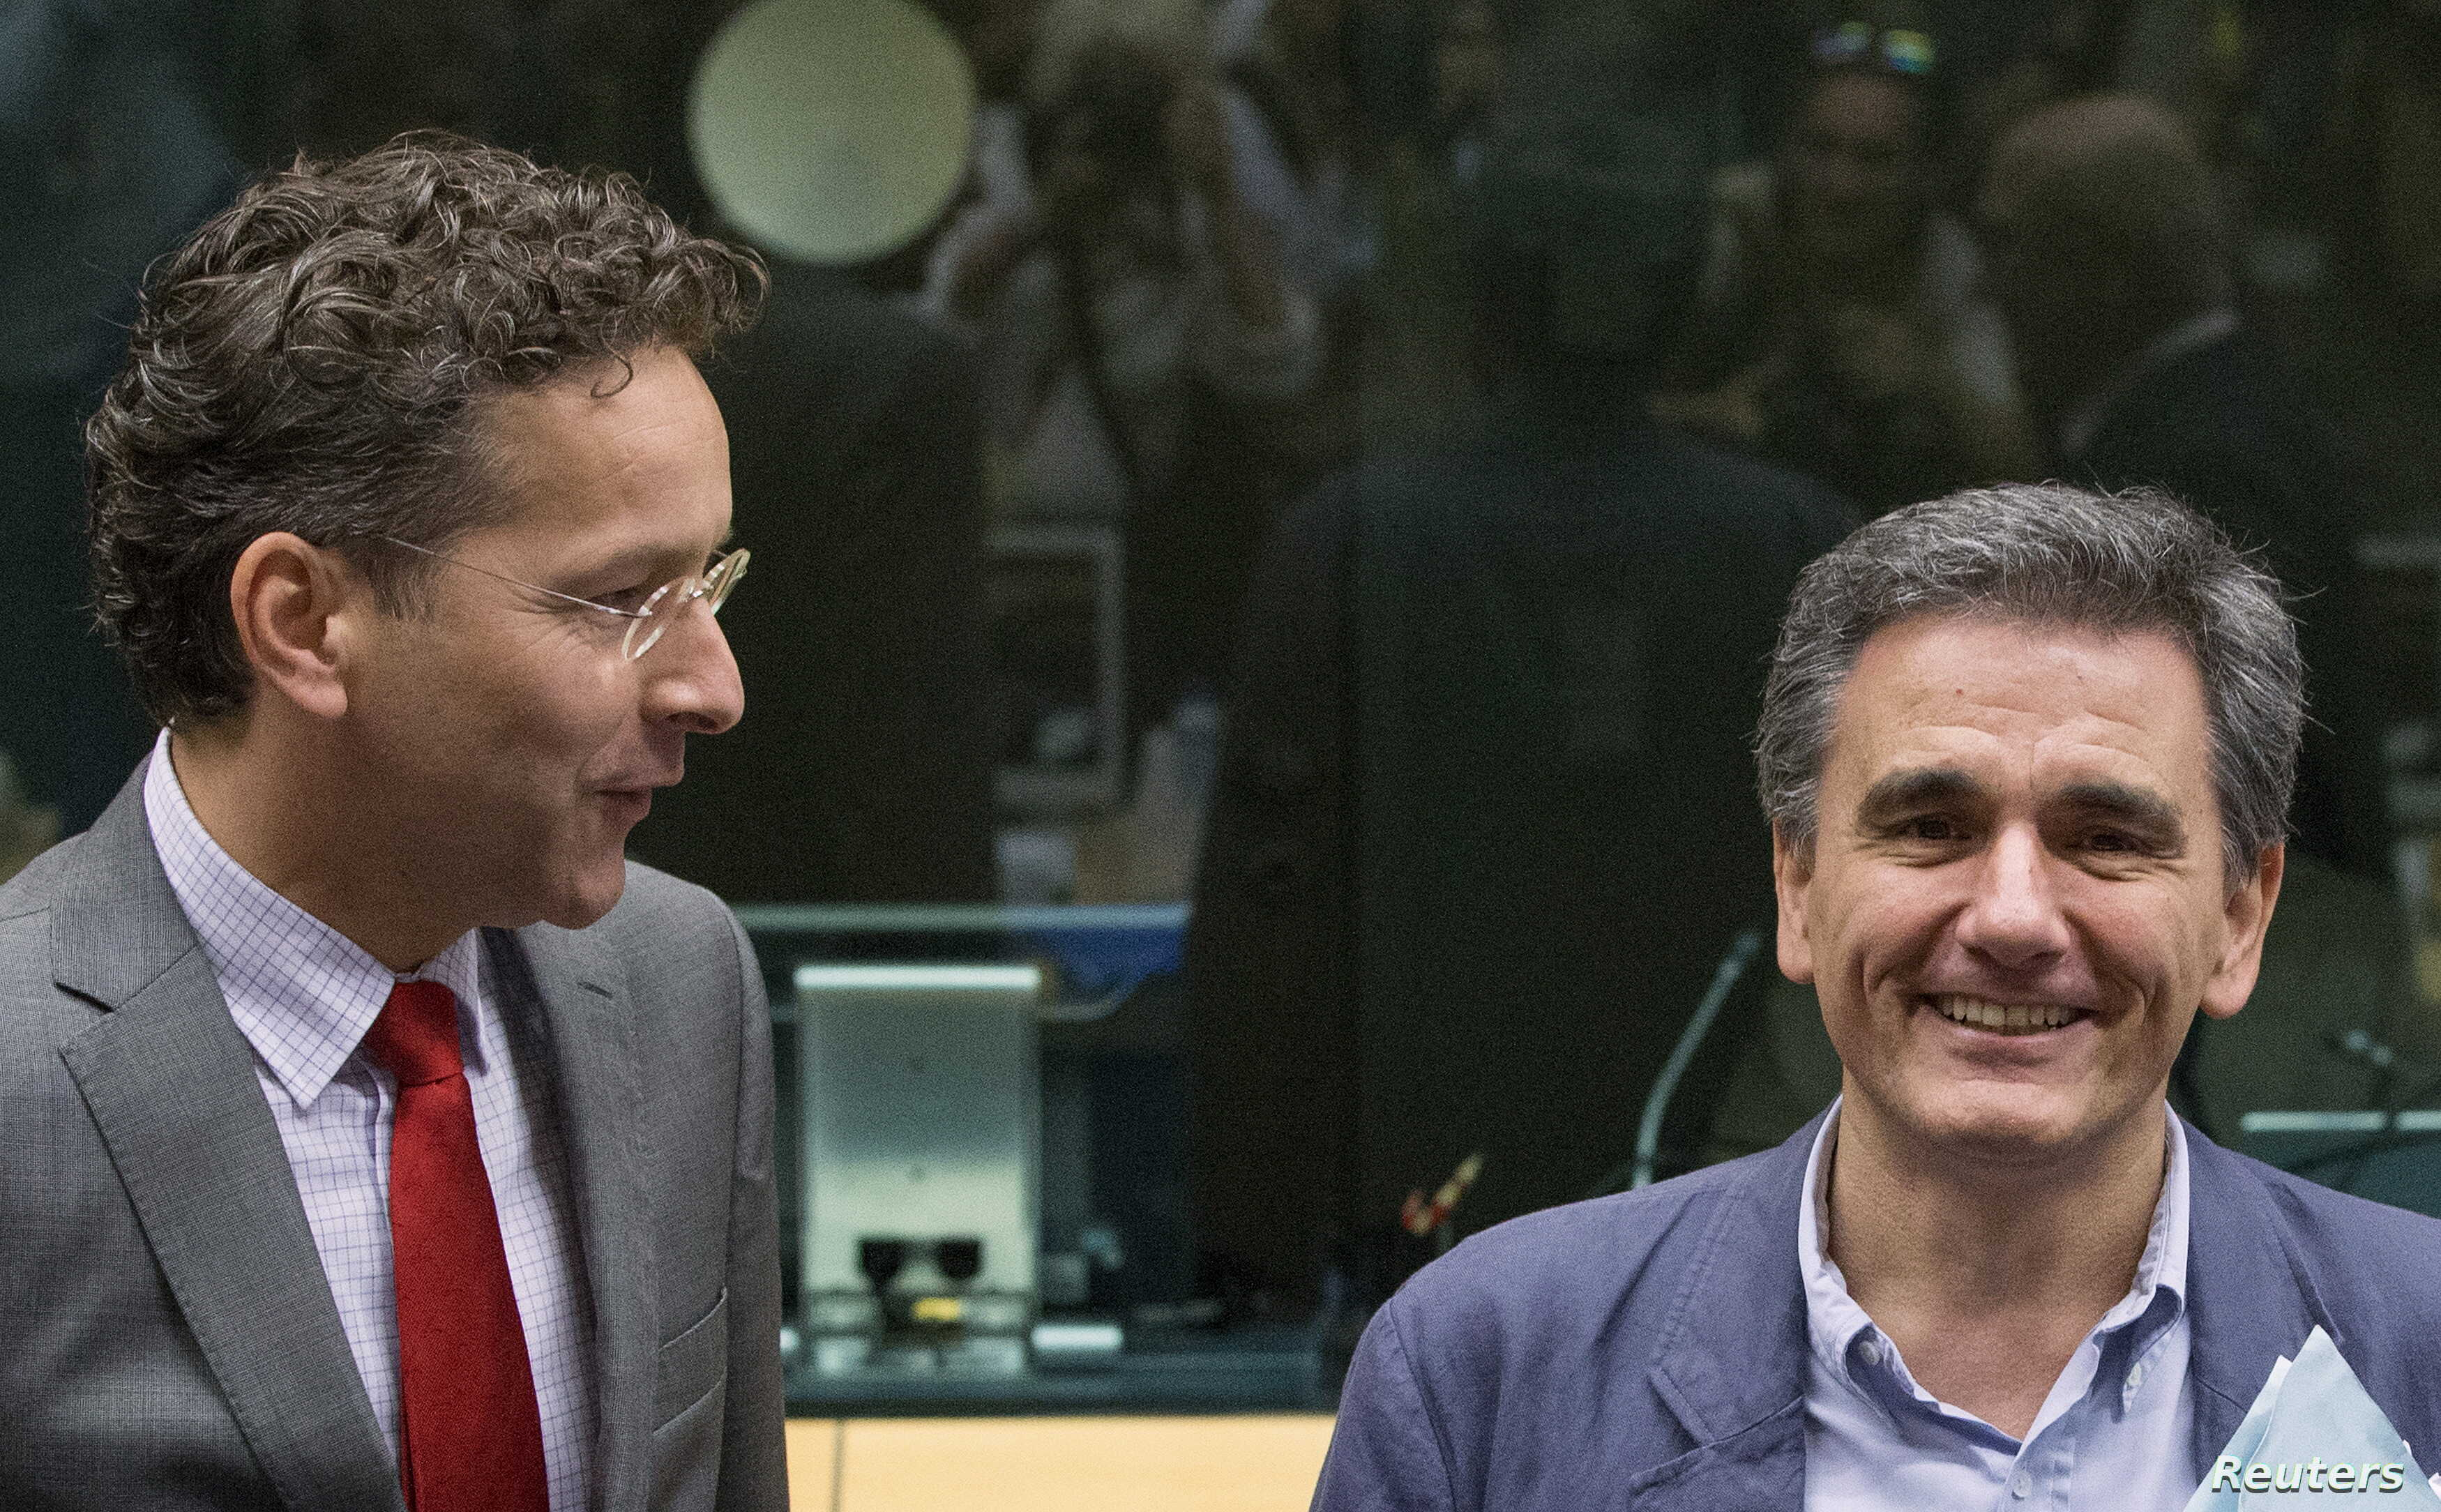 Newly appointed Greek Finance Minister Euclid Tsakalotos (R) is welcomed by Eurogroup President Jeroen Dijsselbloem (L) at a euro zone finance ministers meeting on the situation in Greece in Brussels, Belgium, July 7, 2015.